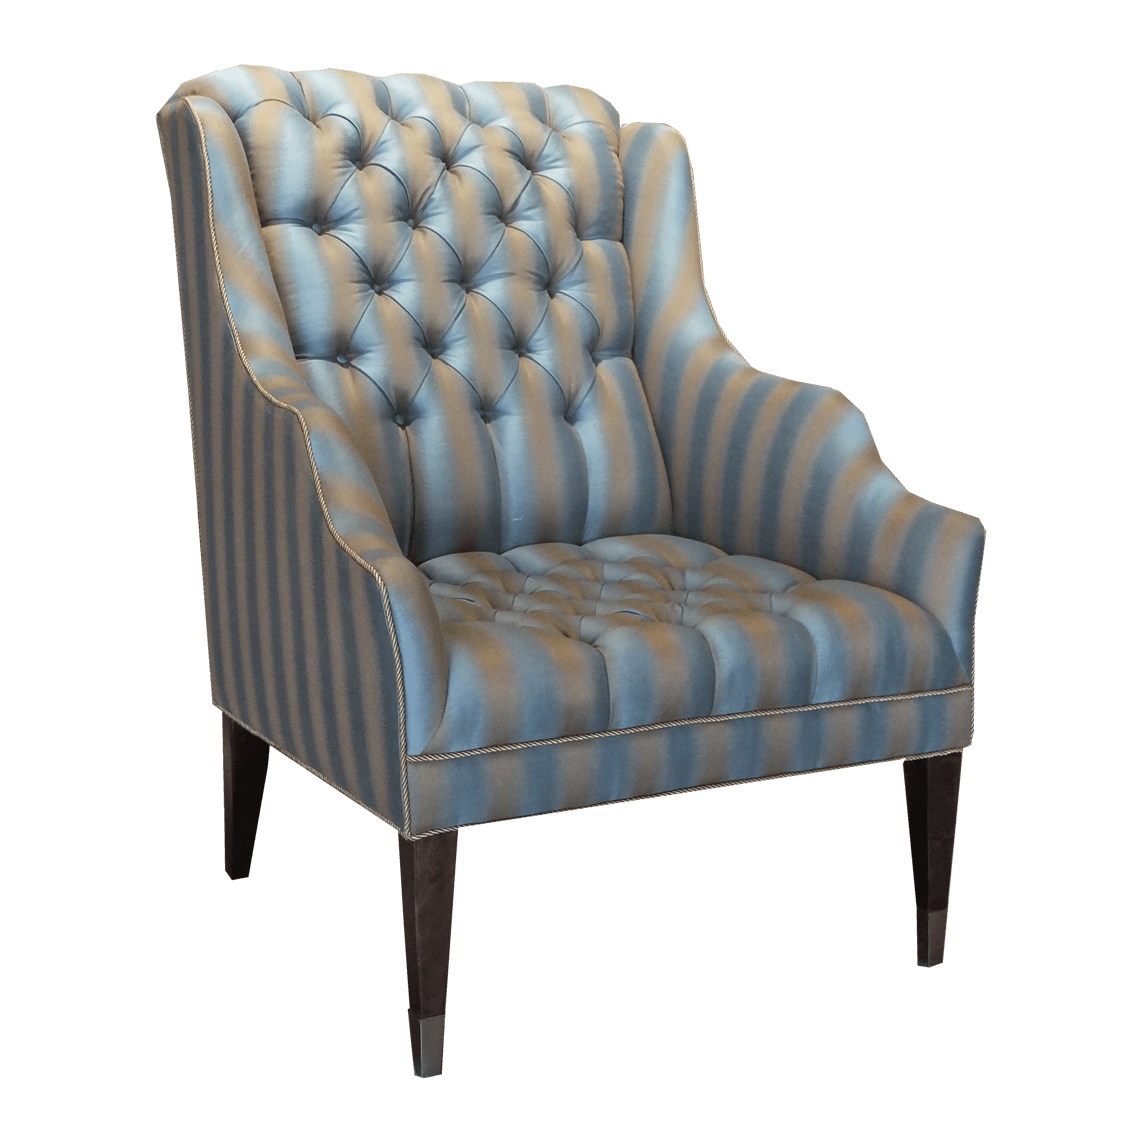 chair covers kansas city ford explorer with captain chairs tufted wingback arm kdrshowrooms